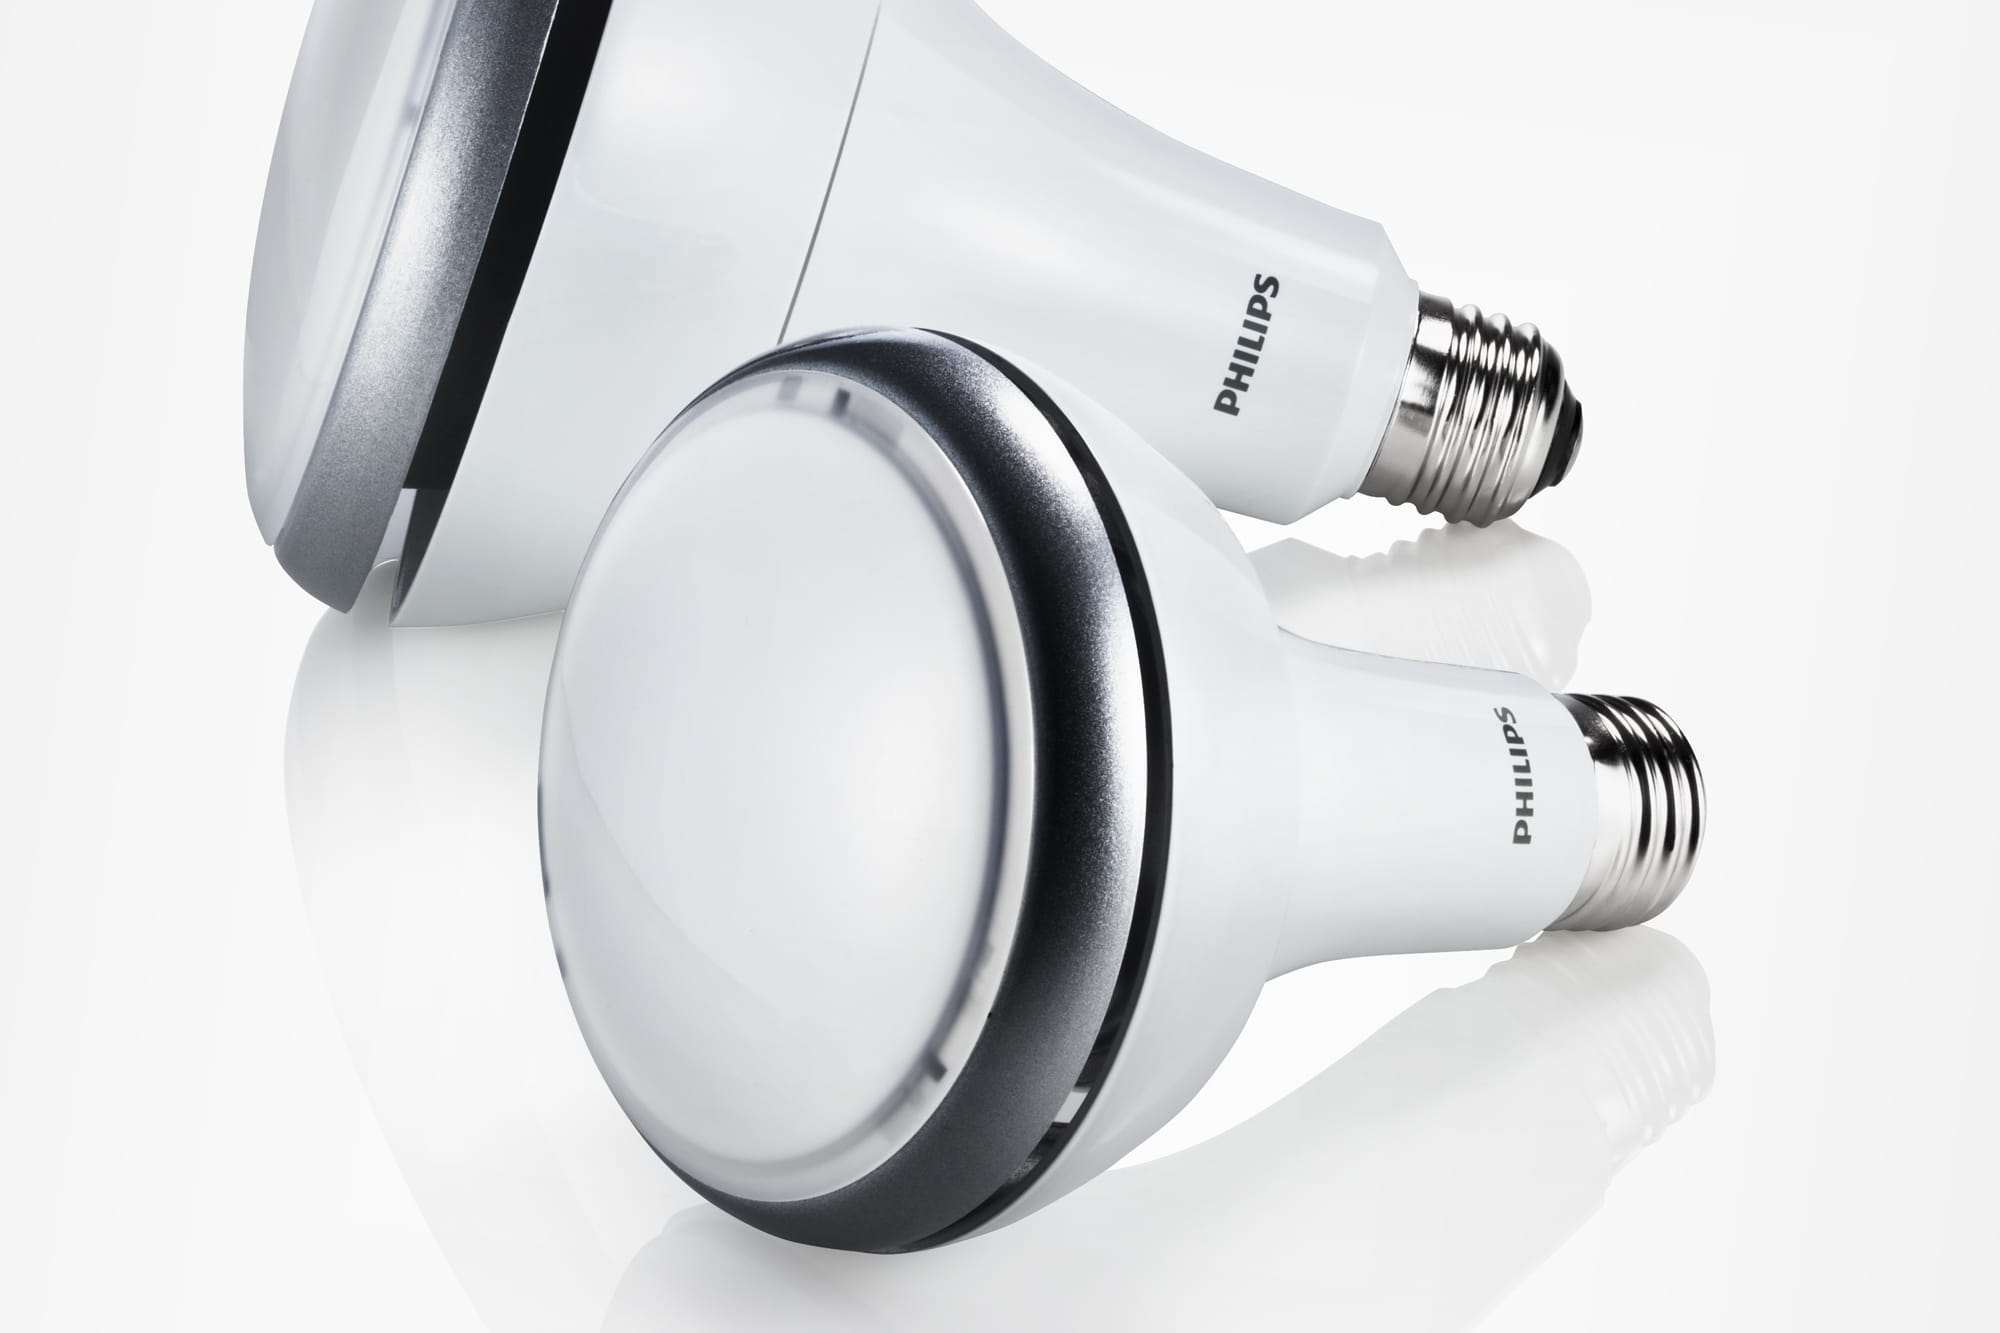 Philips lighting shares rise as ceo hails historic market debut buycottarizona